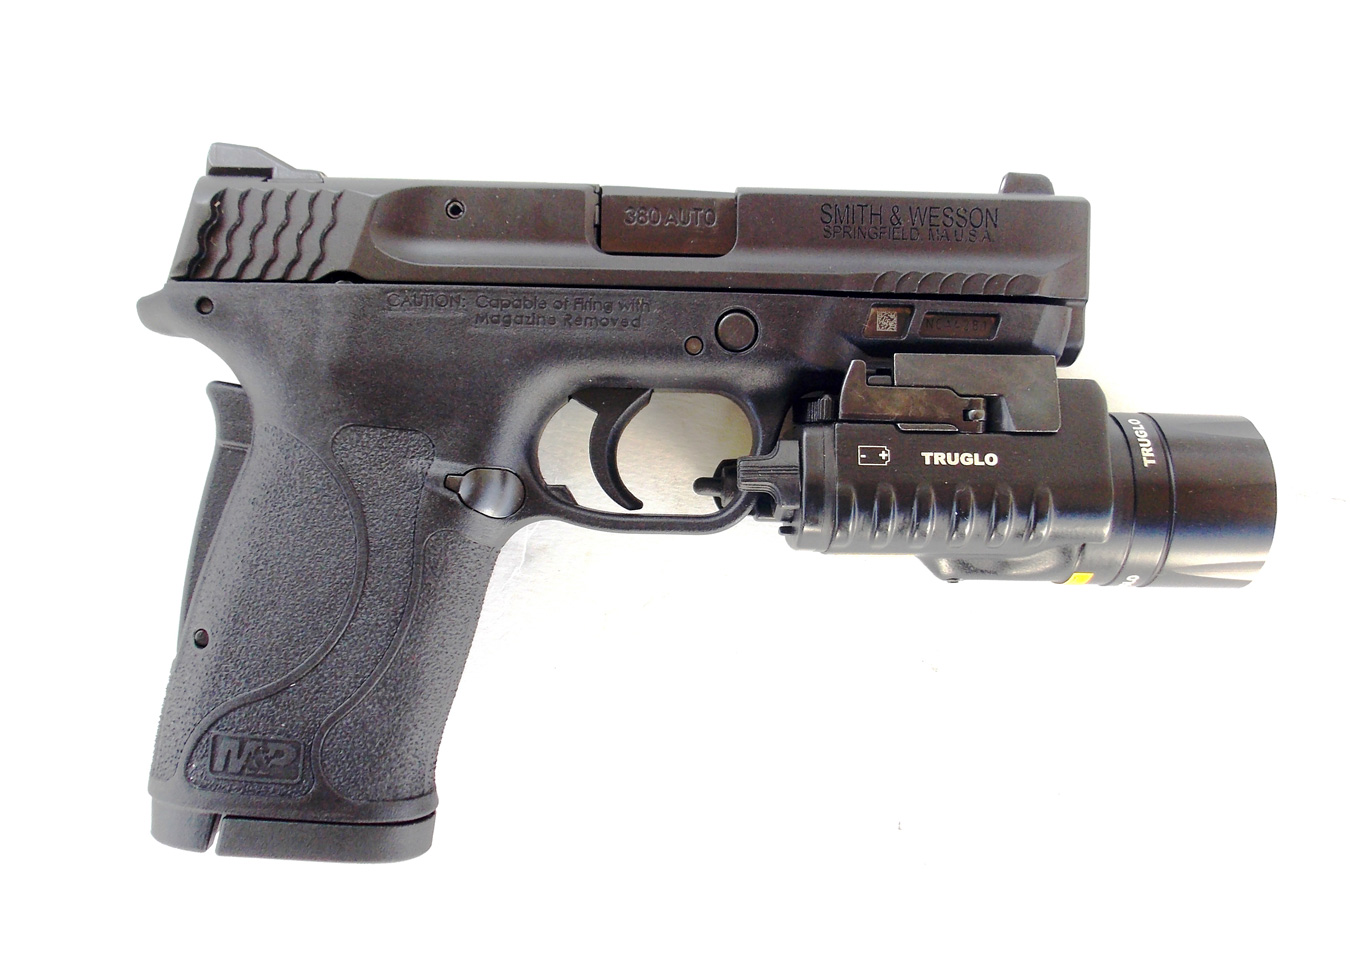 Smith and Wesson shield with TruGlo combat light